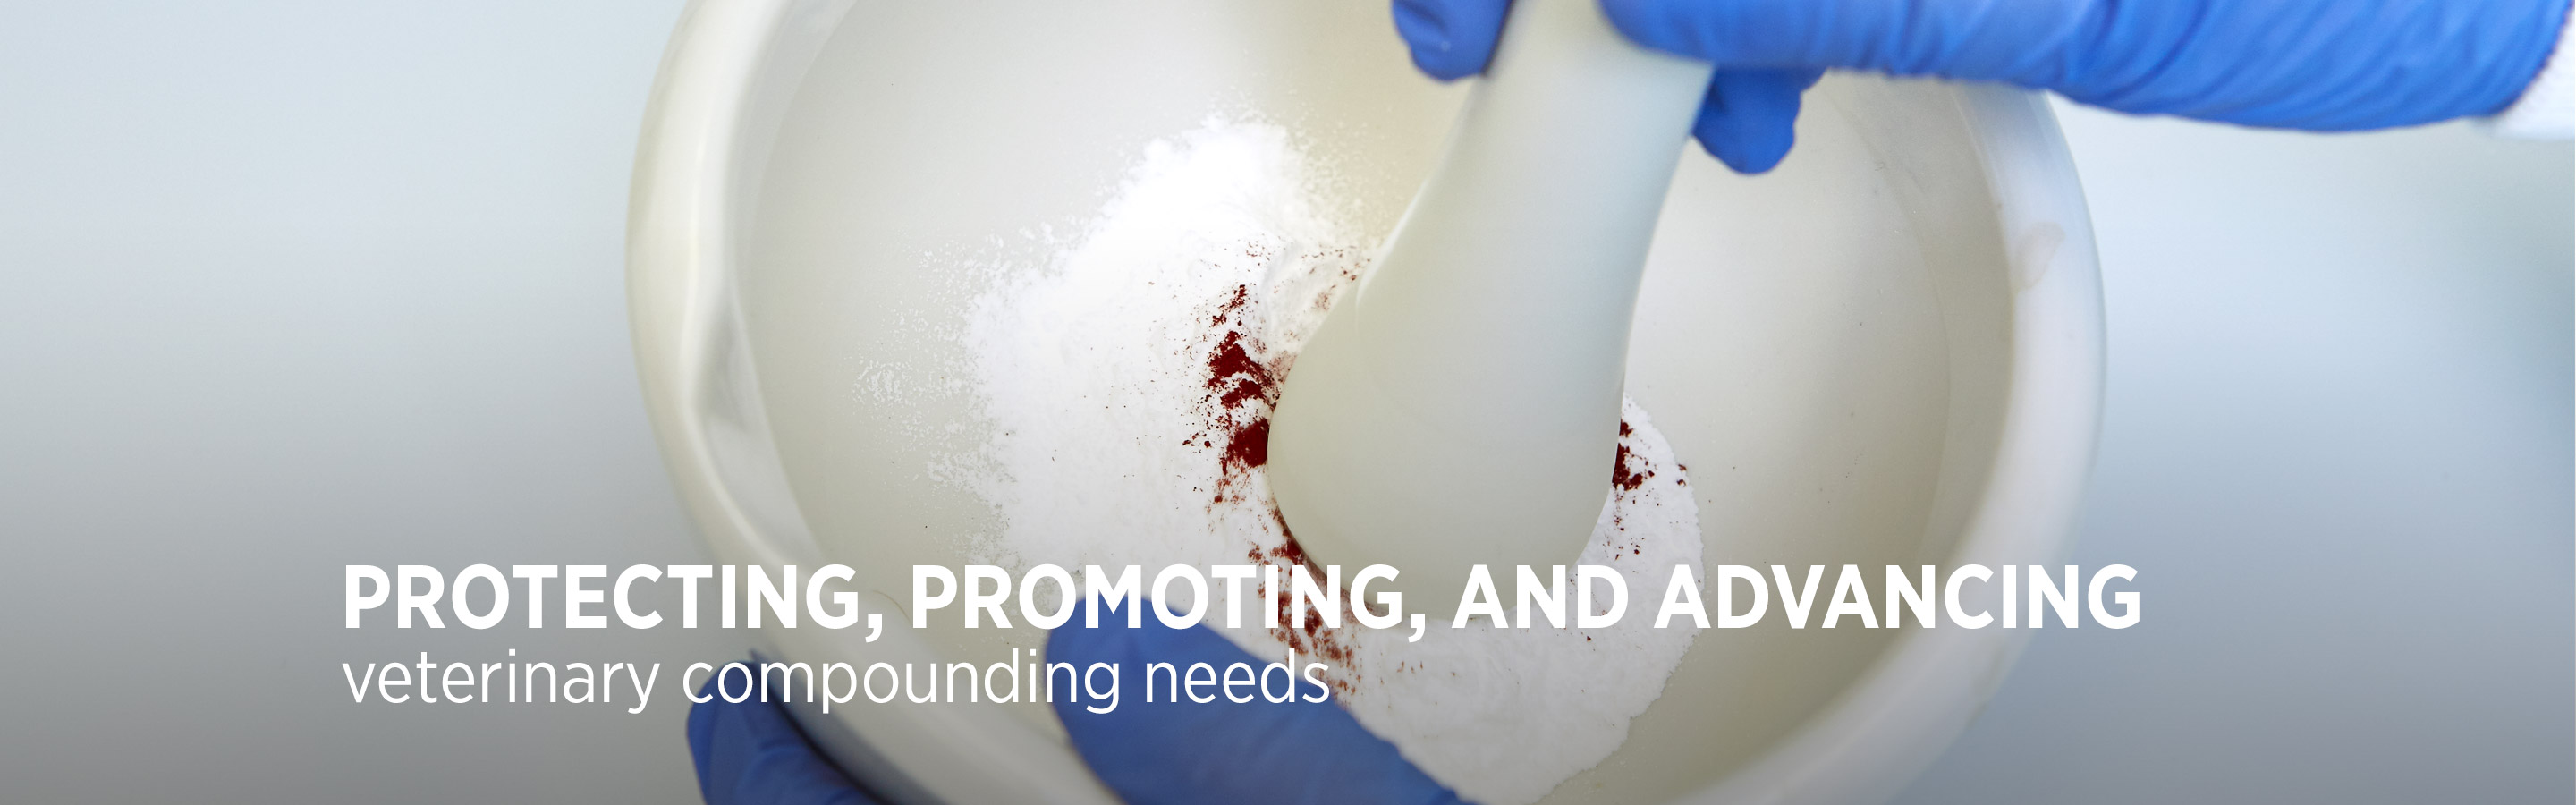 AVMA: Protecting, promoting, and advancing veterinary compounding needs